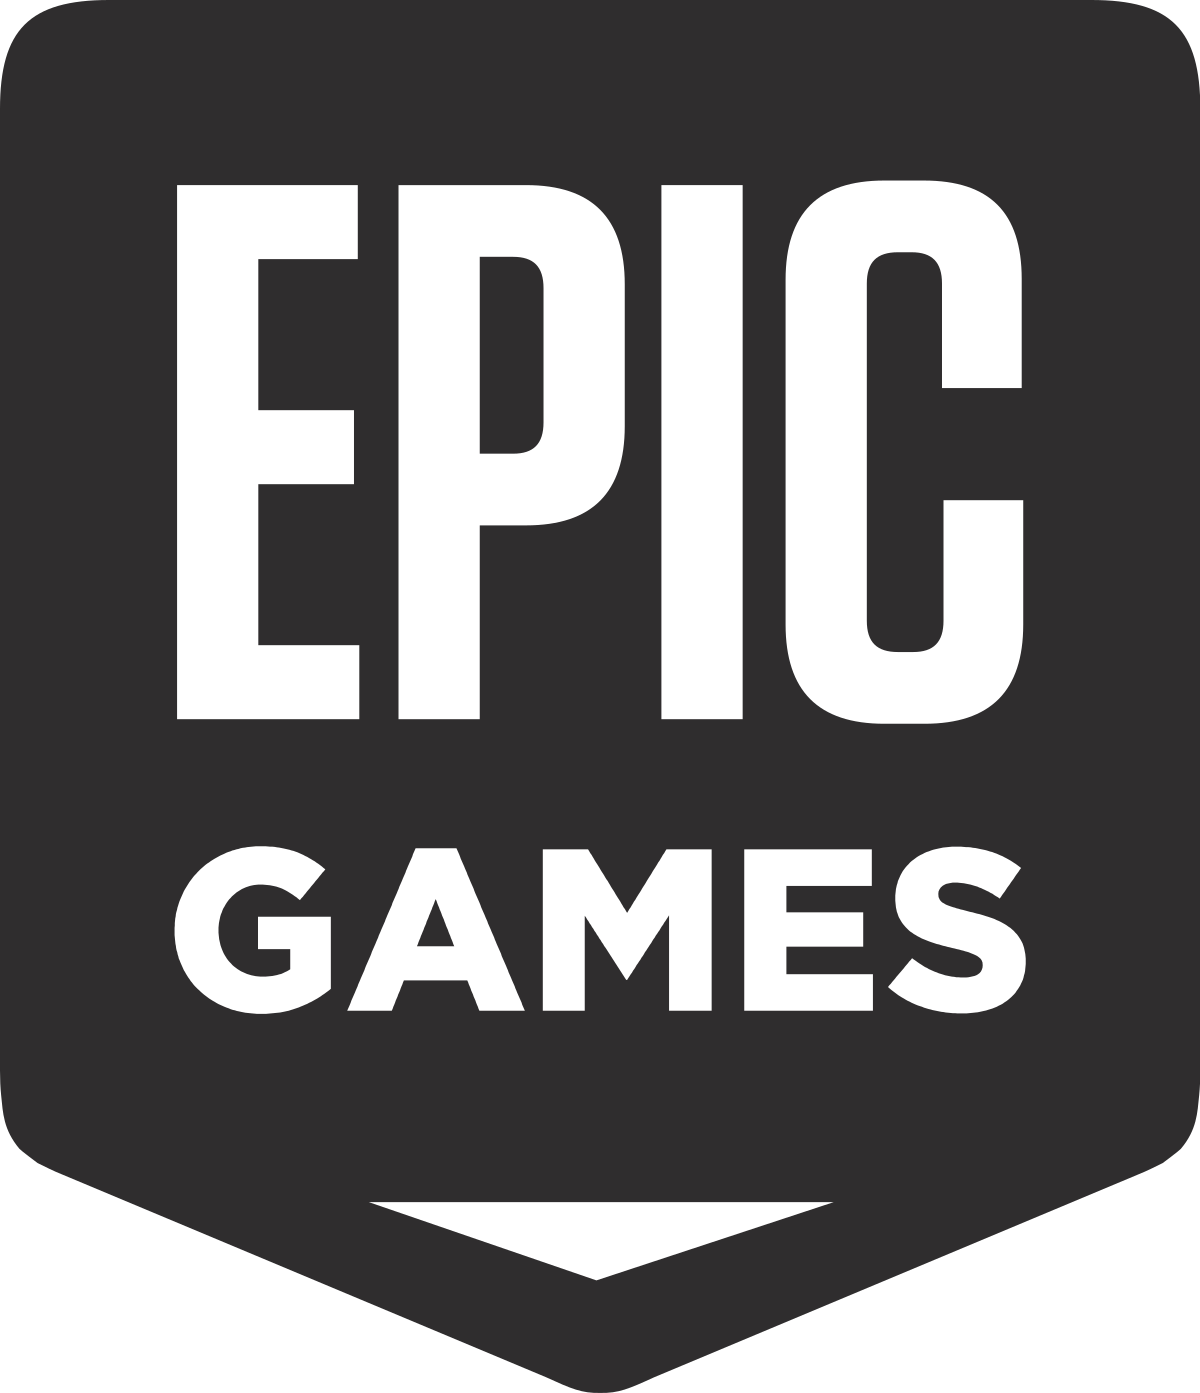 fortnite by epic games #27062